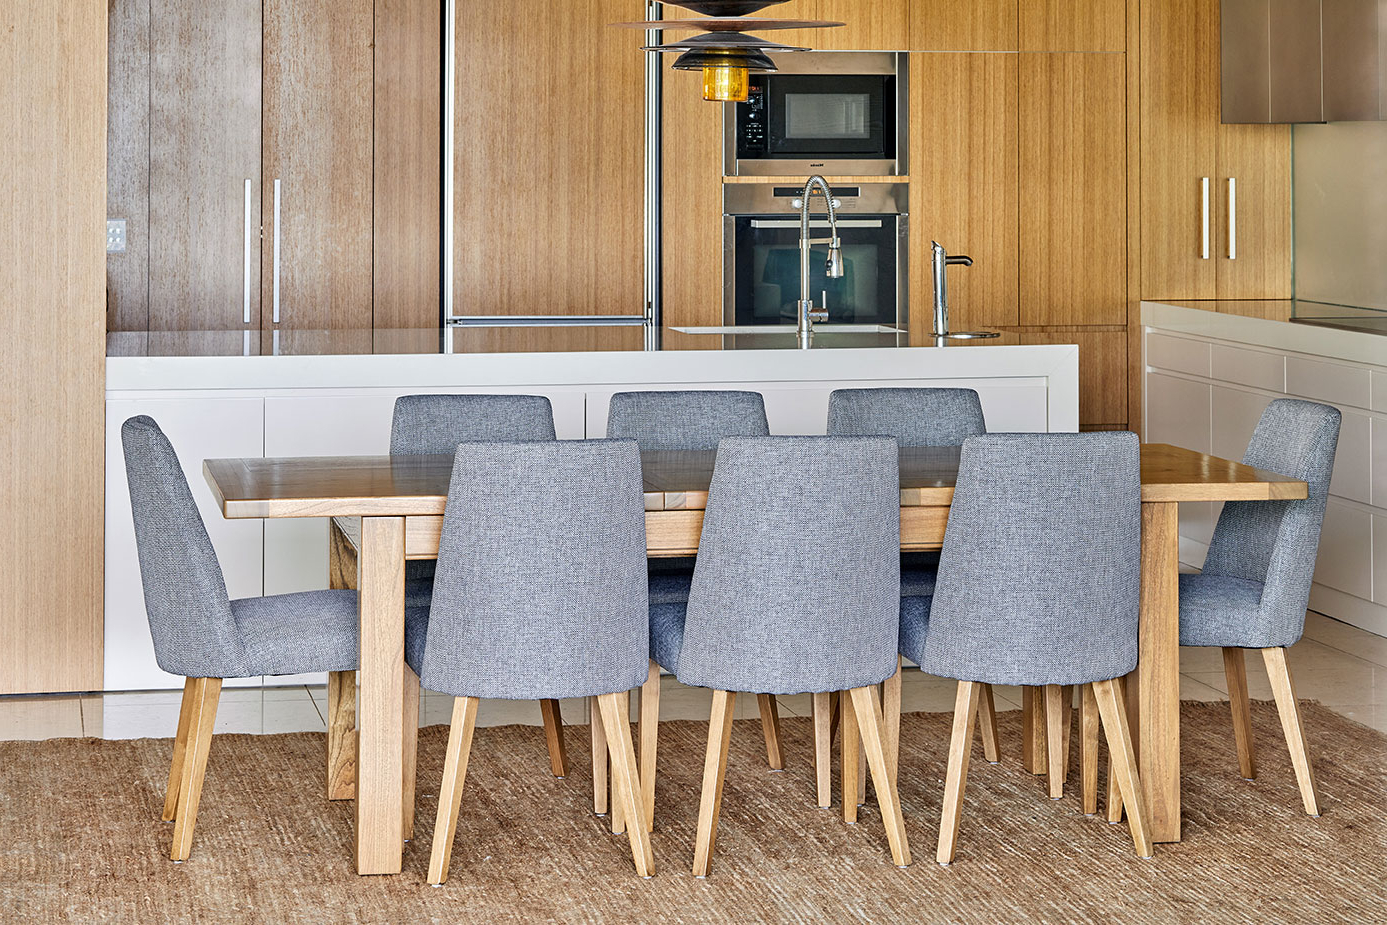 Most Recent How To Choose An Extension Dining Table » Shack Homewares With Regard To 8 Seater Wood Contemporary Dining Tables With Extension Leaf (View 14 of 25)